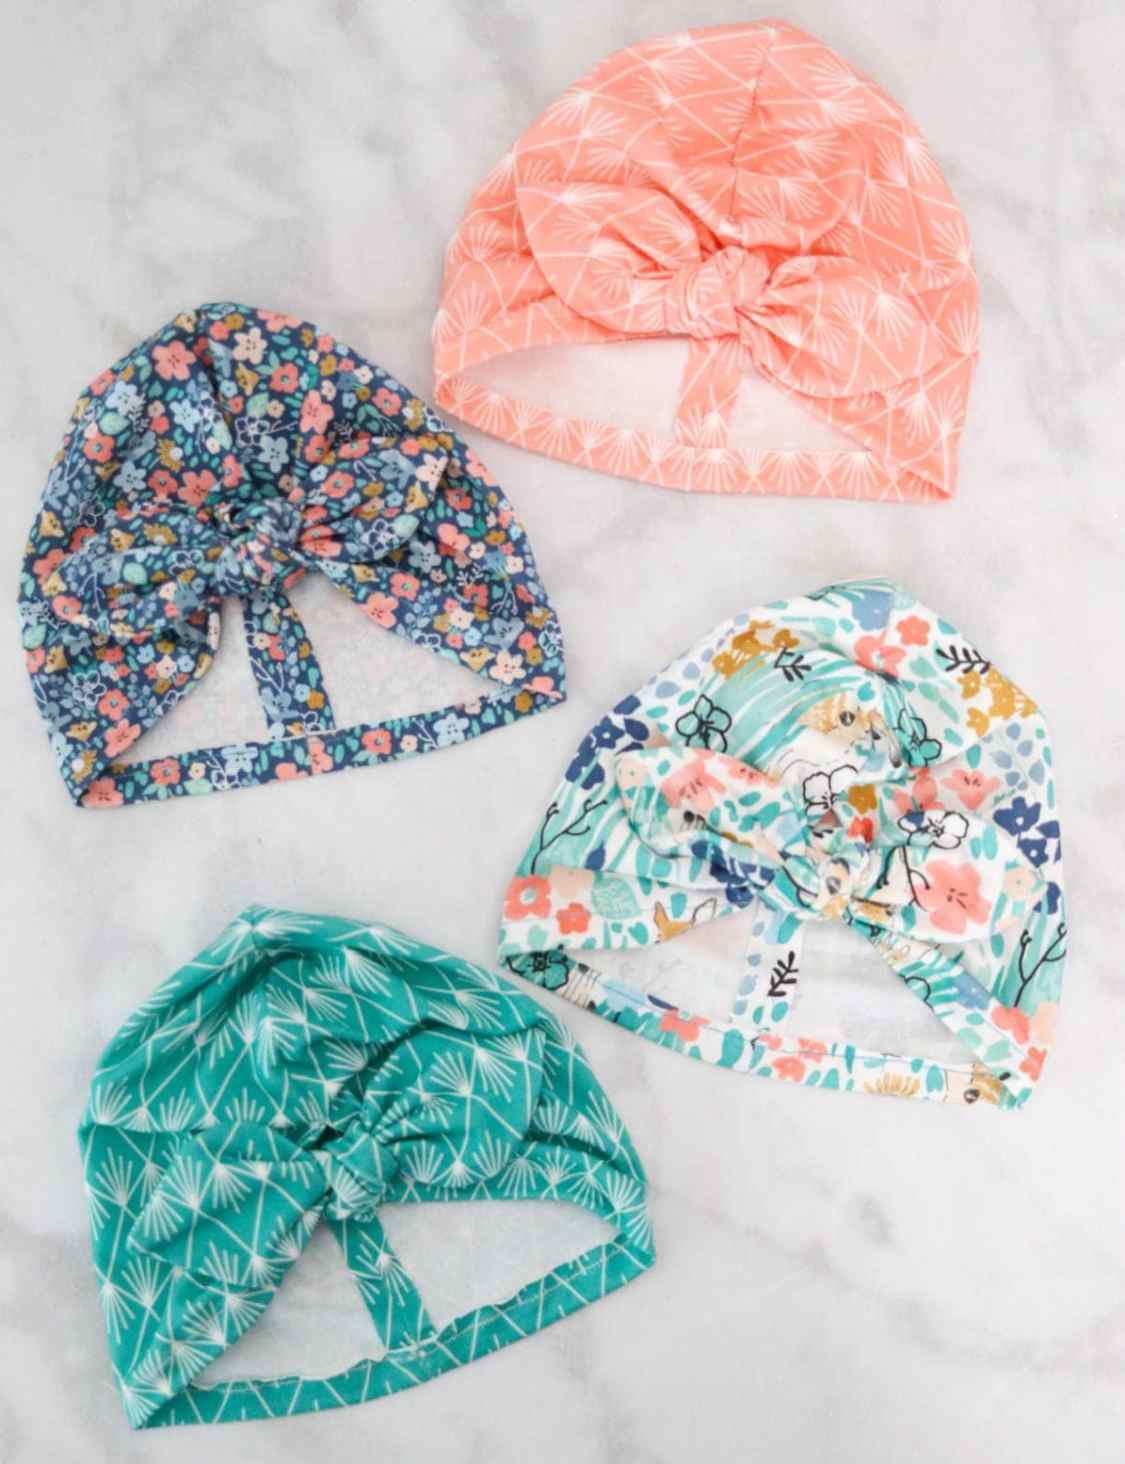 Sewing tutorial: Knotted turban baby hat